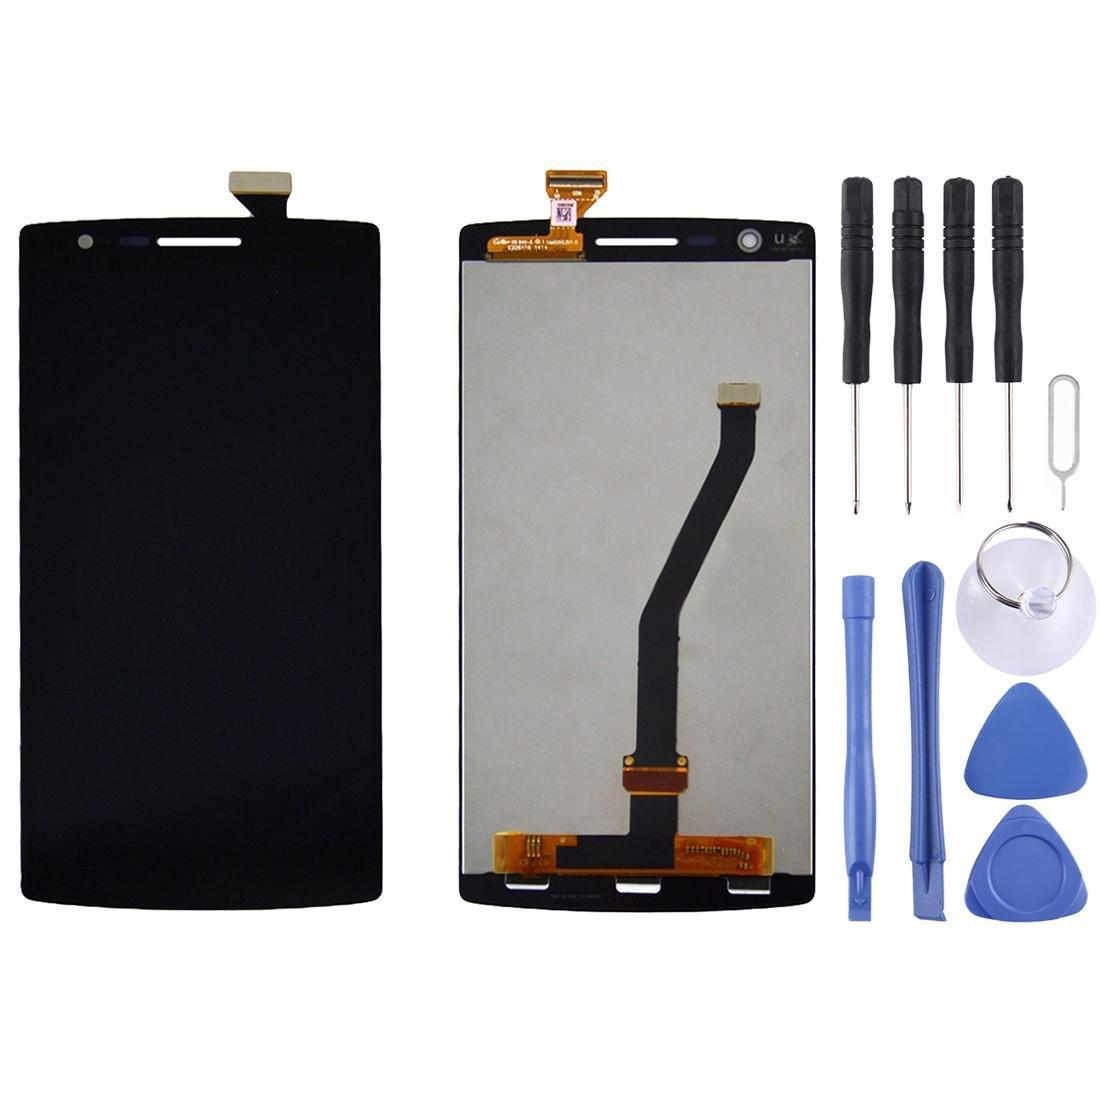 LCD Display + Touch Panel for OnePlus One